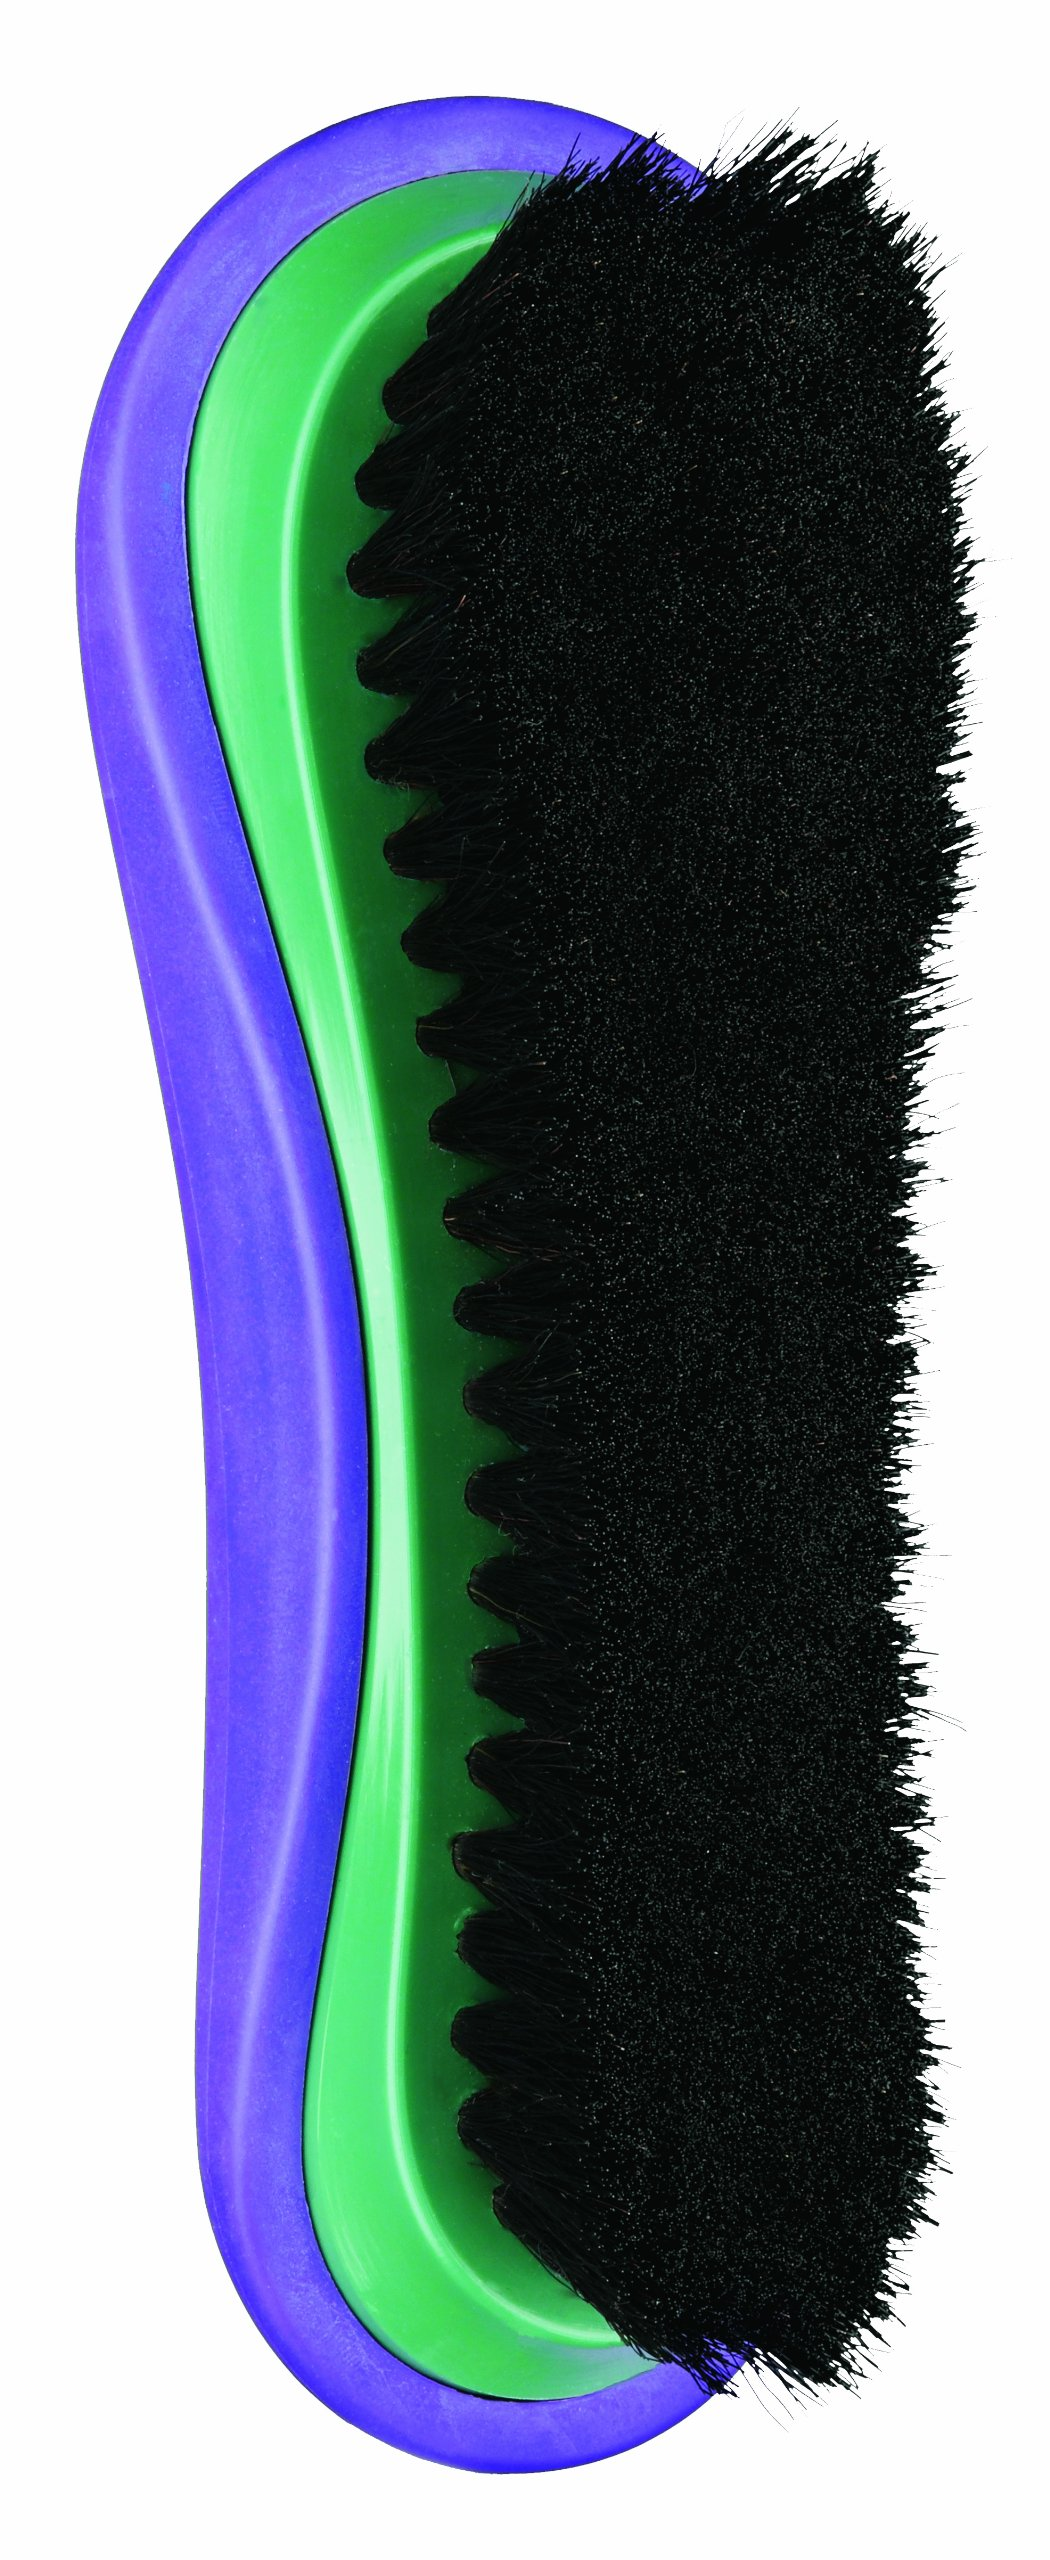 Conair Equine FX Horse Hair Finishing Brush, Equine Professional Grooming, Green/Purple